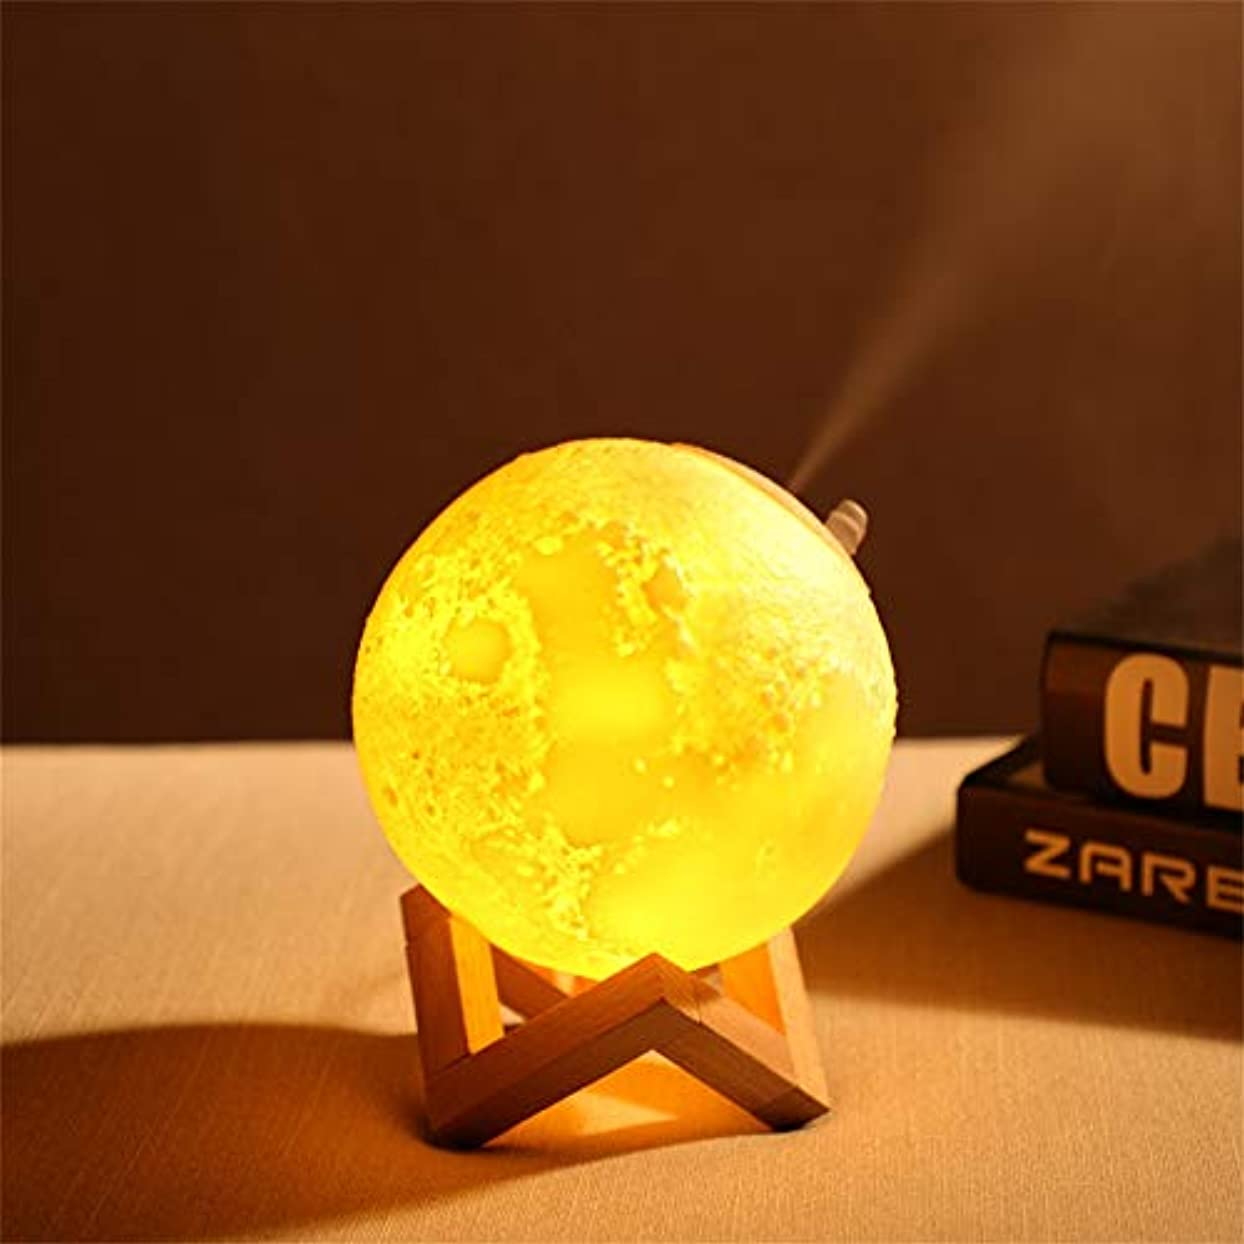 Essential Oil Diffuser 3D Moon Lamp Ultrasonic Cool Mist Aroma Diffuser Multifunctional Waterless Auto Shut-Off...